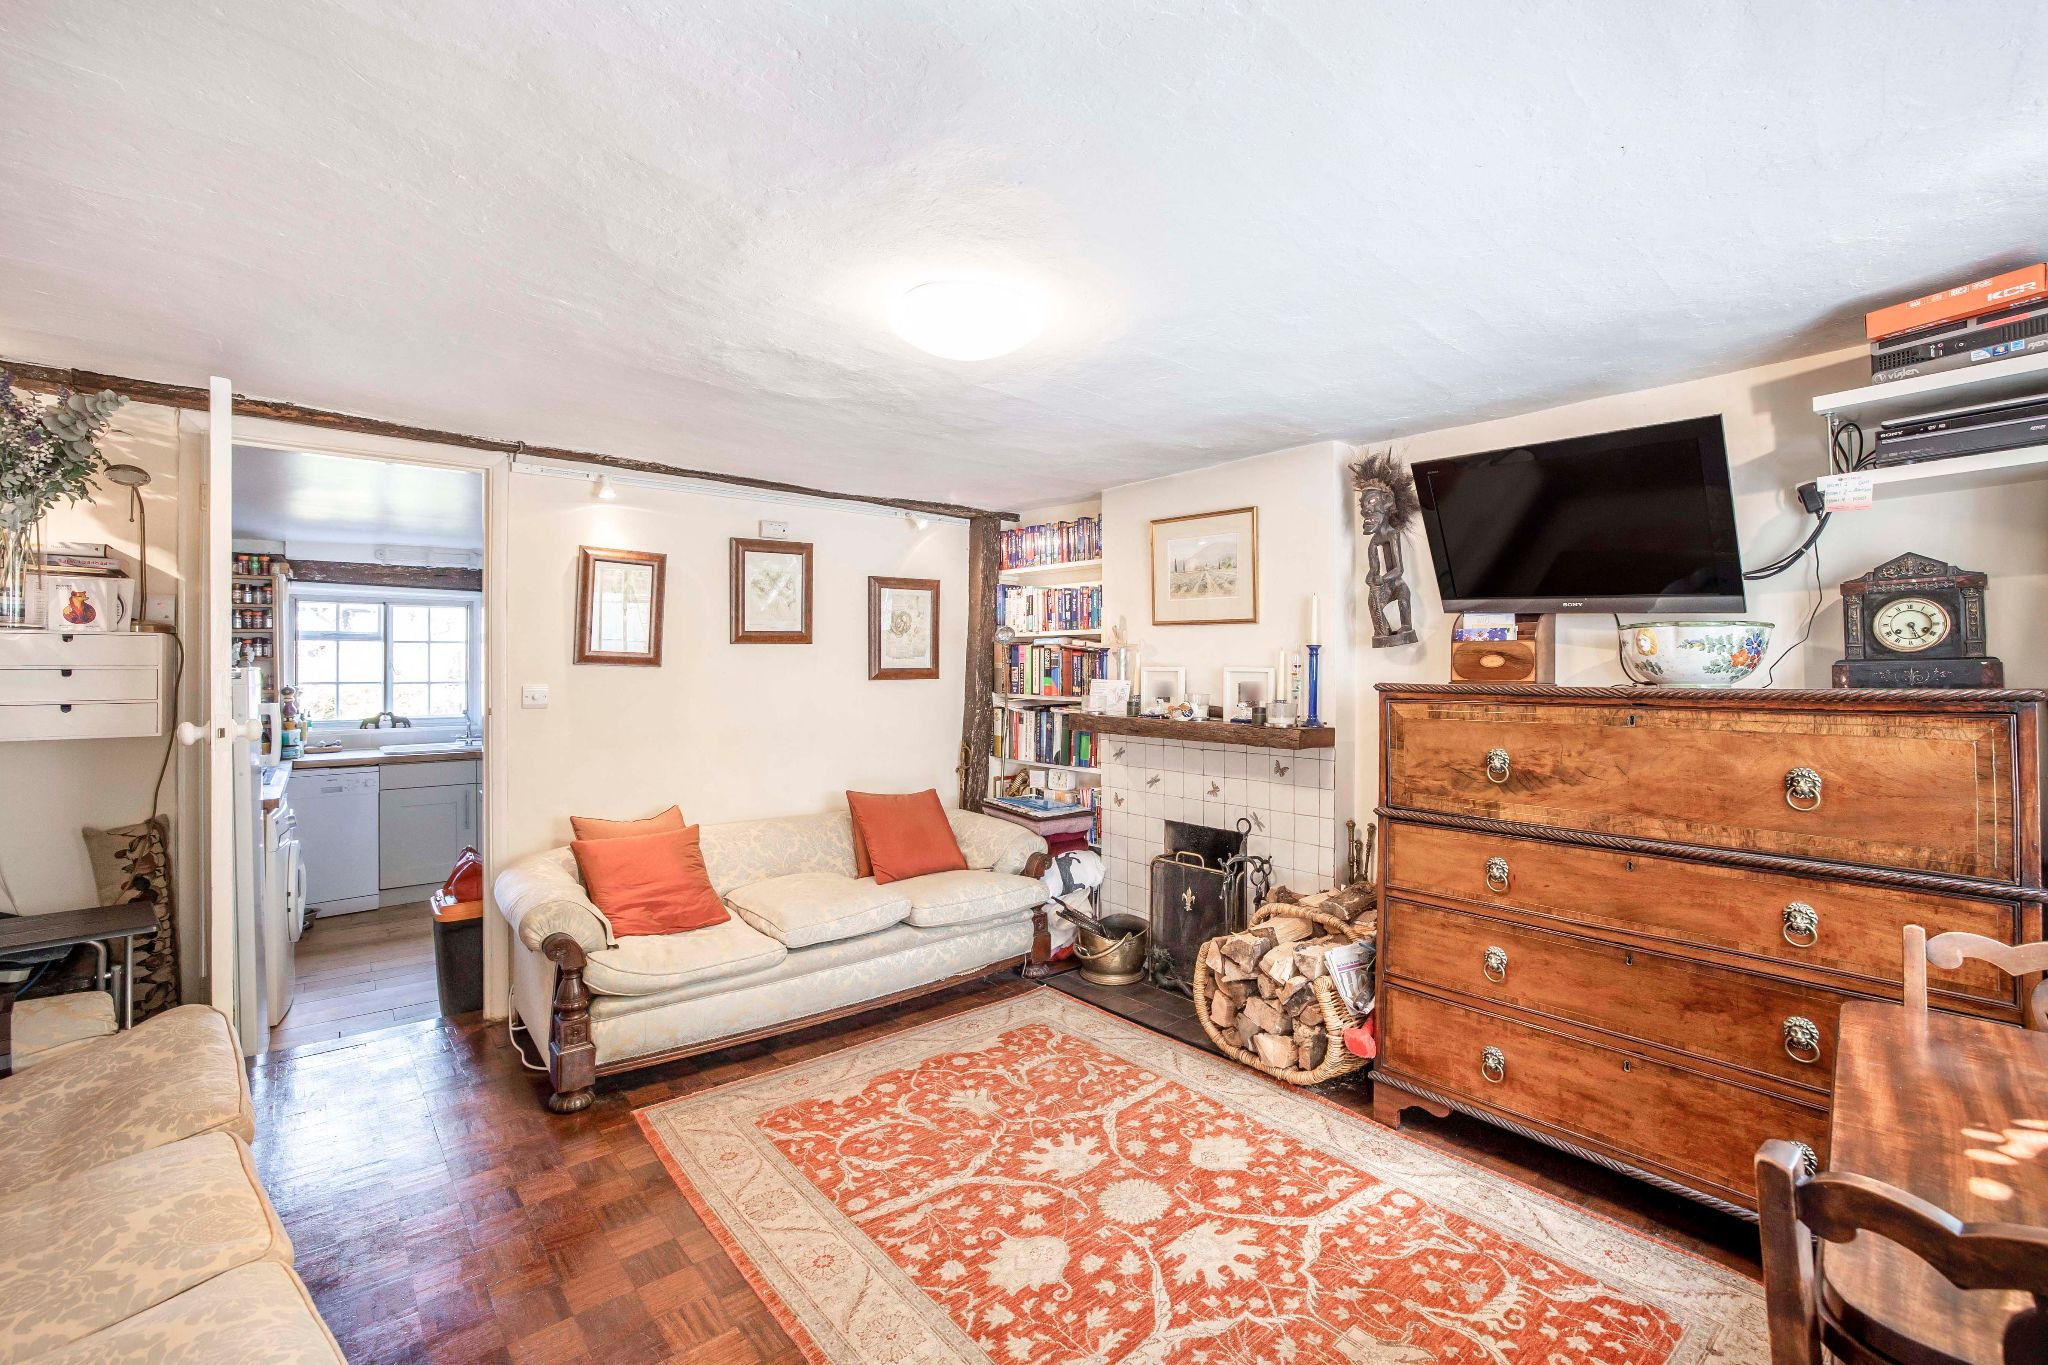 4 bedroom mid terraced house For Sale in Essendon - Photograph 4